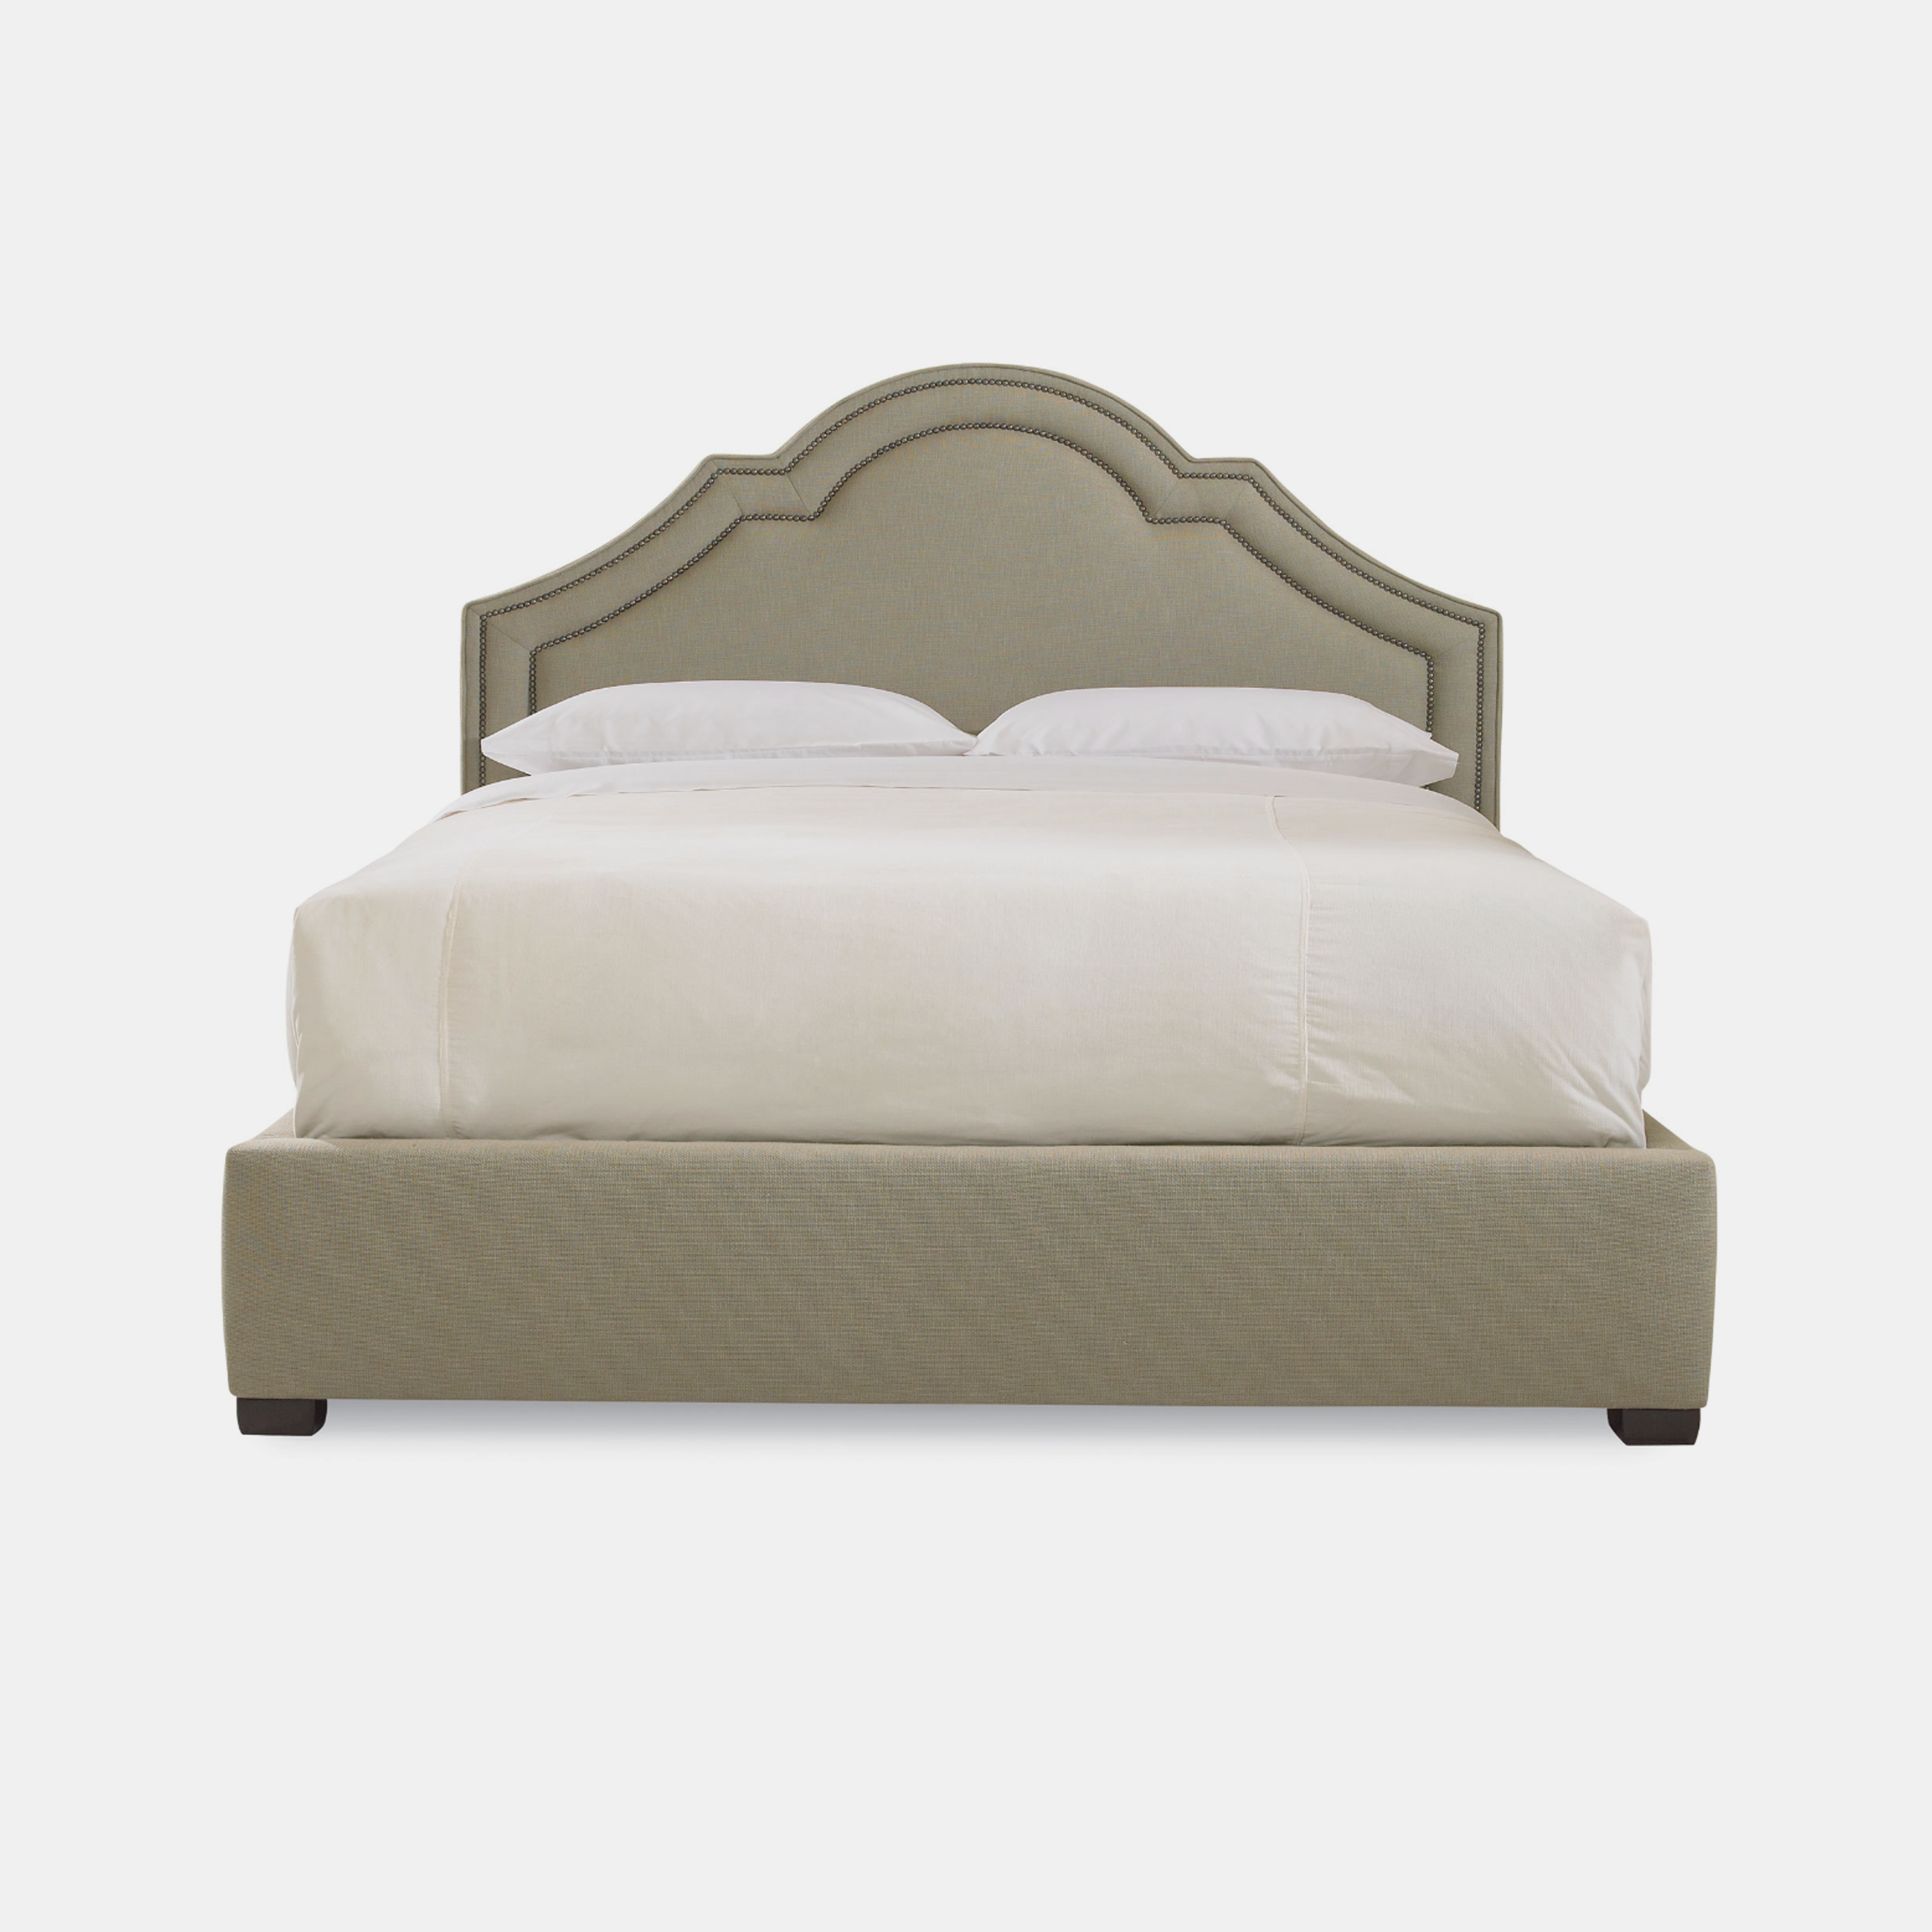 "Madison Bed  68-3/4""w x 88-1/8""l x 60-1/8""h (queen) Available in twin, full, queen, california king, and eastern king. Also available as headboard. SKU23898BHT"